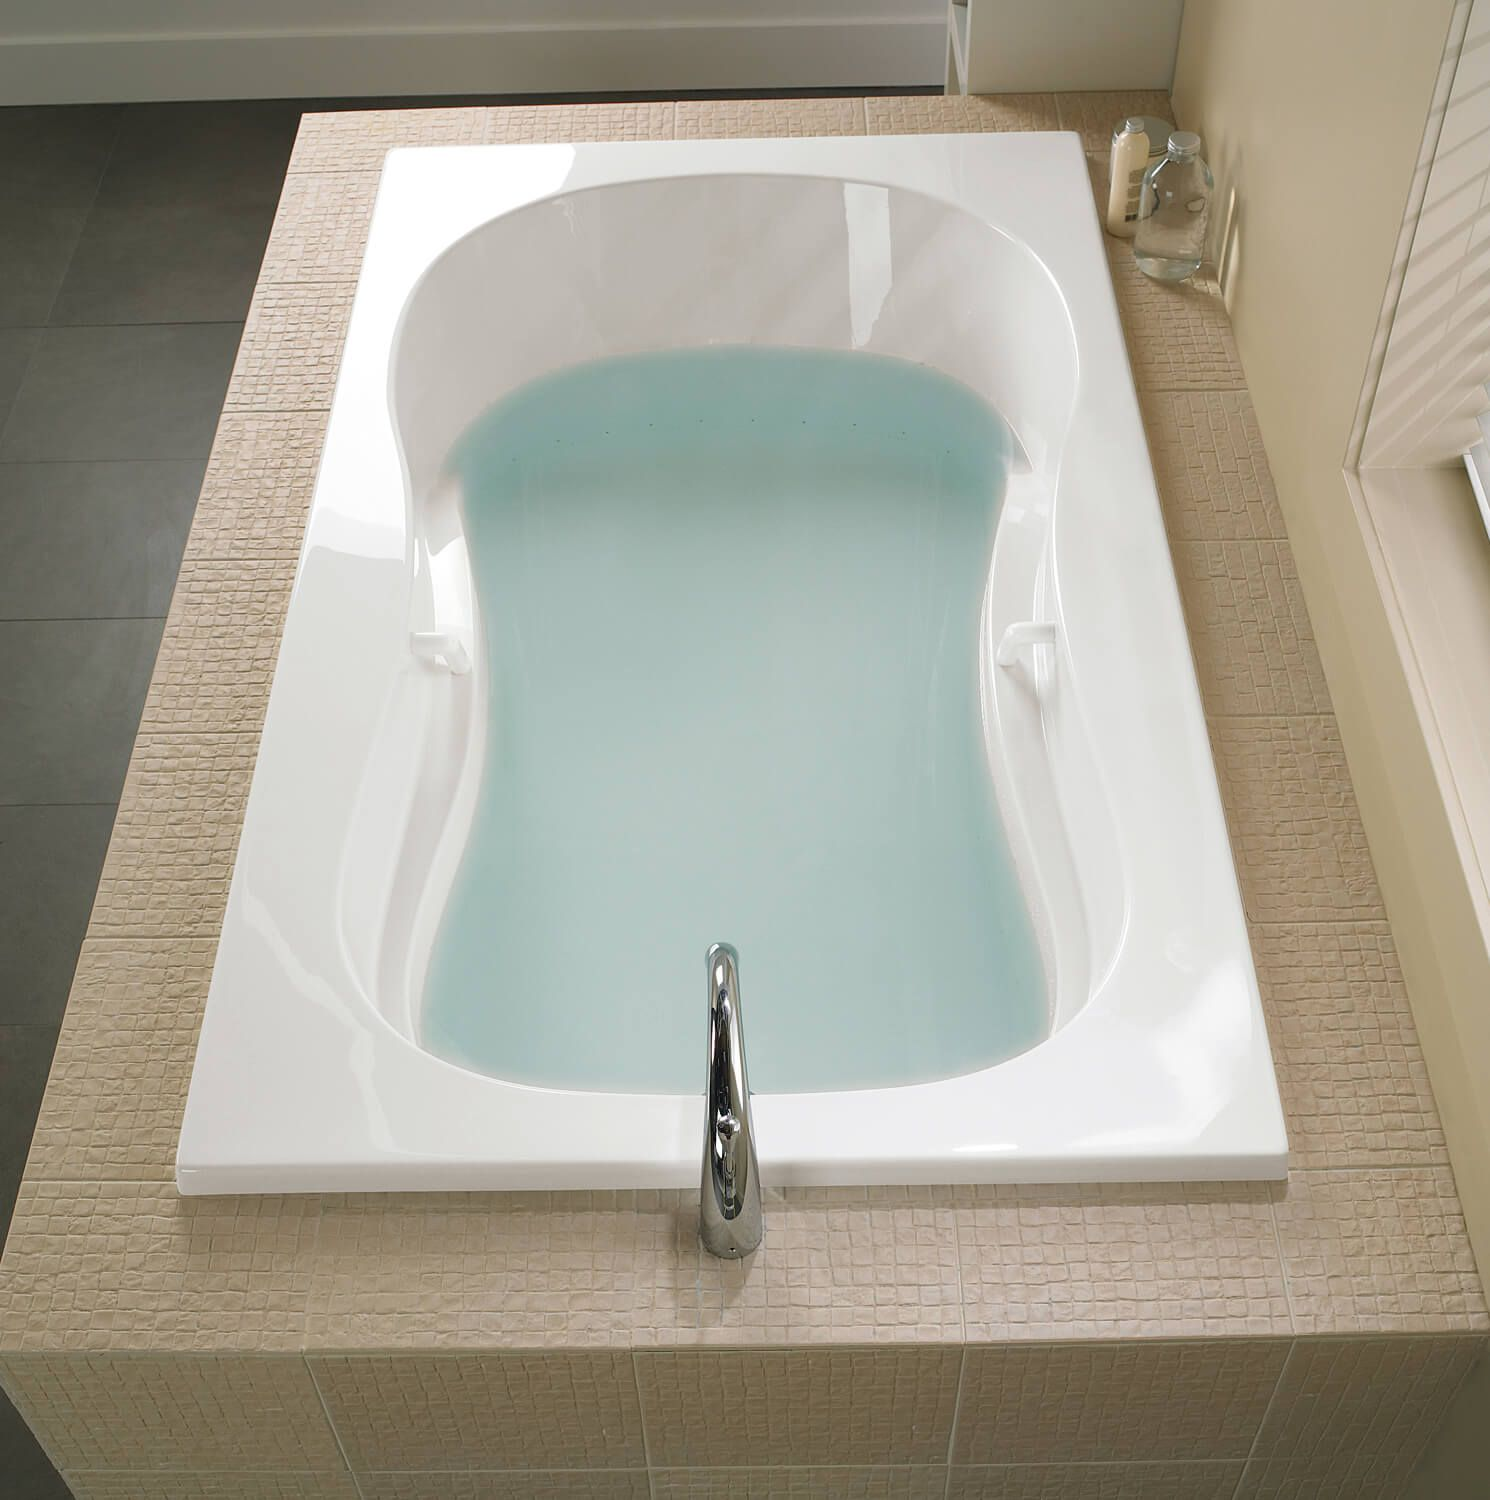 Bainultra Azur 50 Collection Alcove Drop In Air Jet Bathtub For